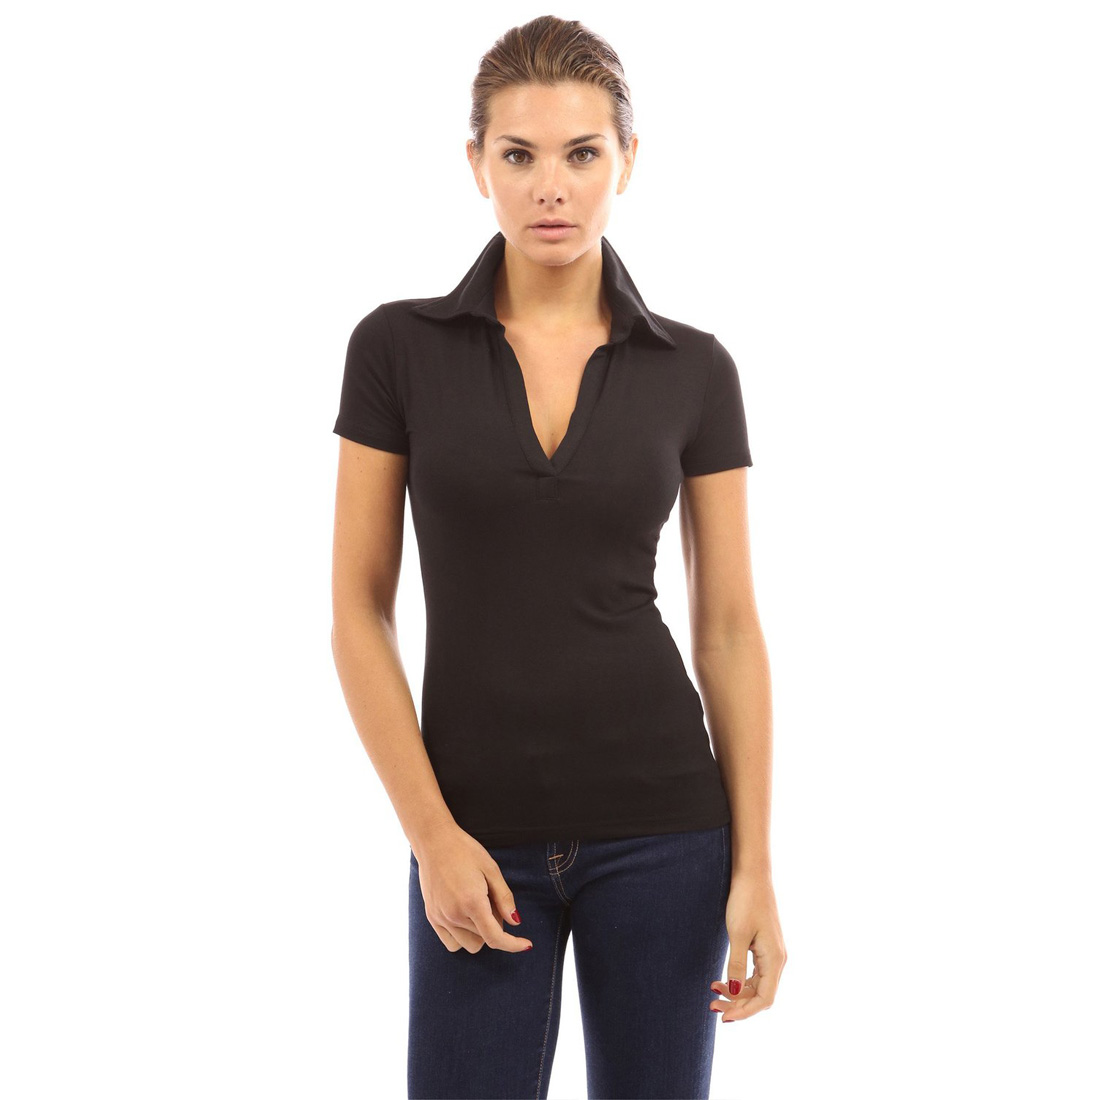 Cover your body with amazing Ladies Casual t-shirts from Zazzle. Search for your new favorite shirt from thousands of great designs!